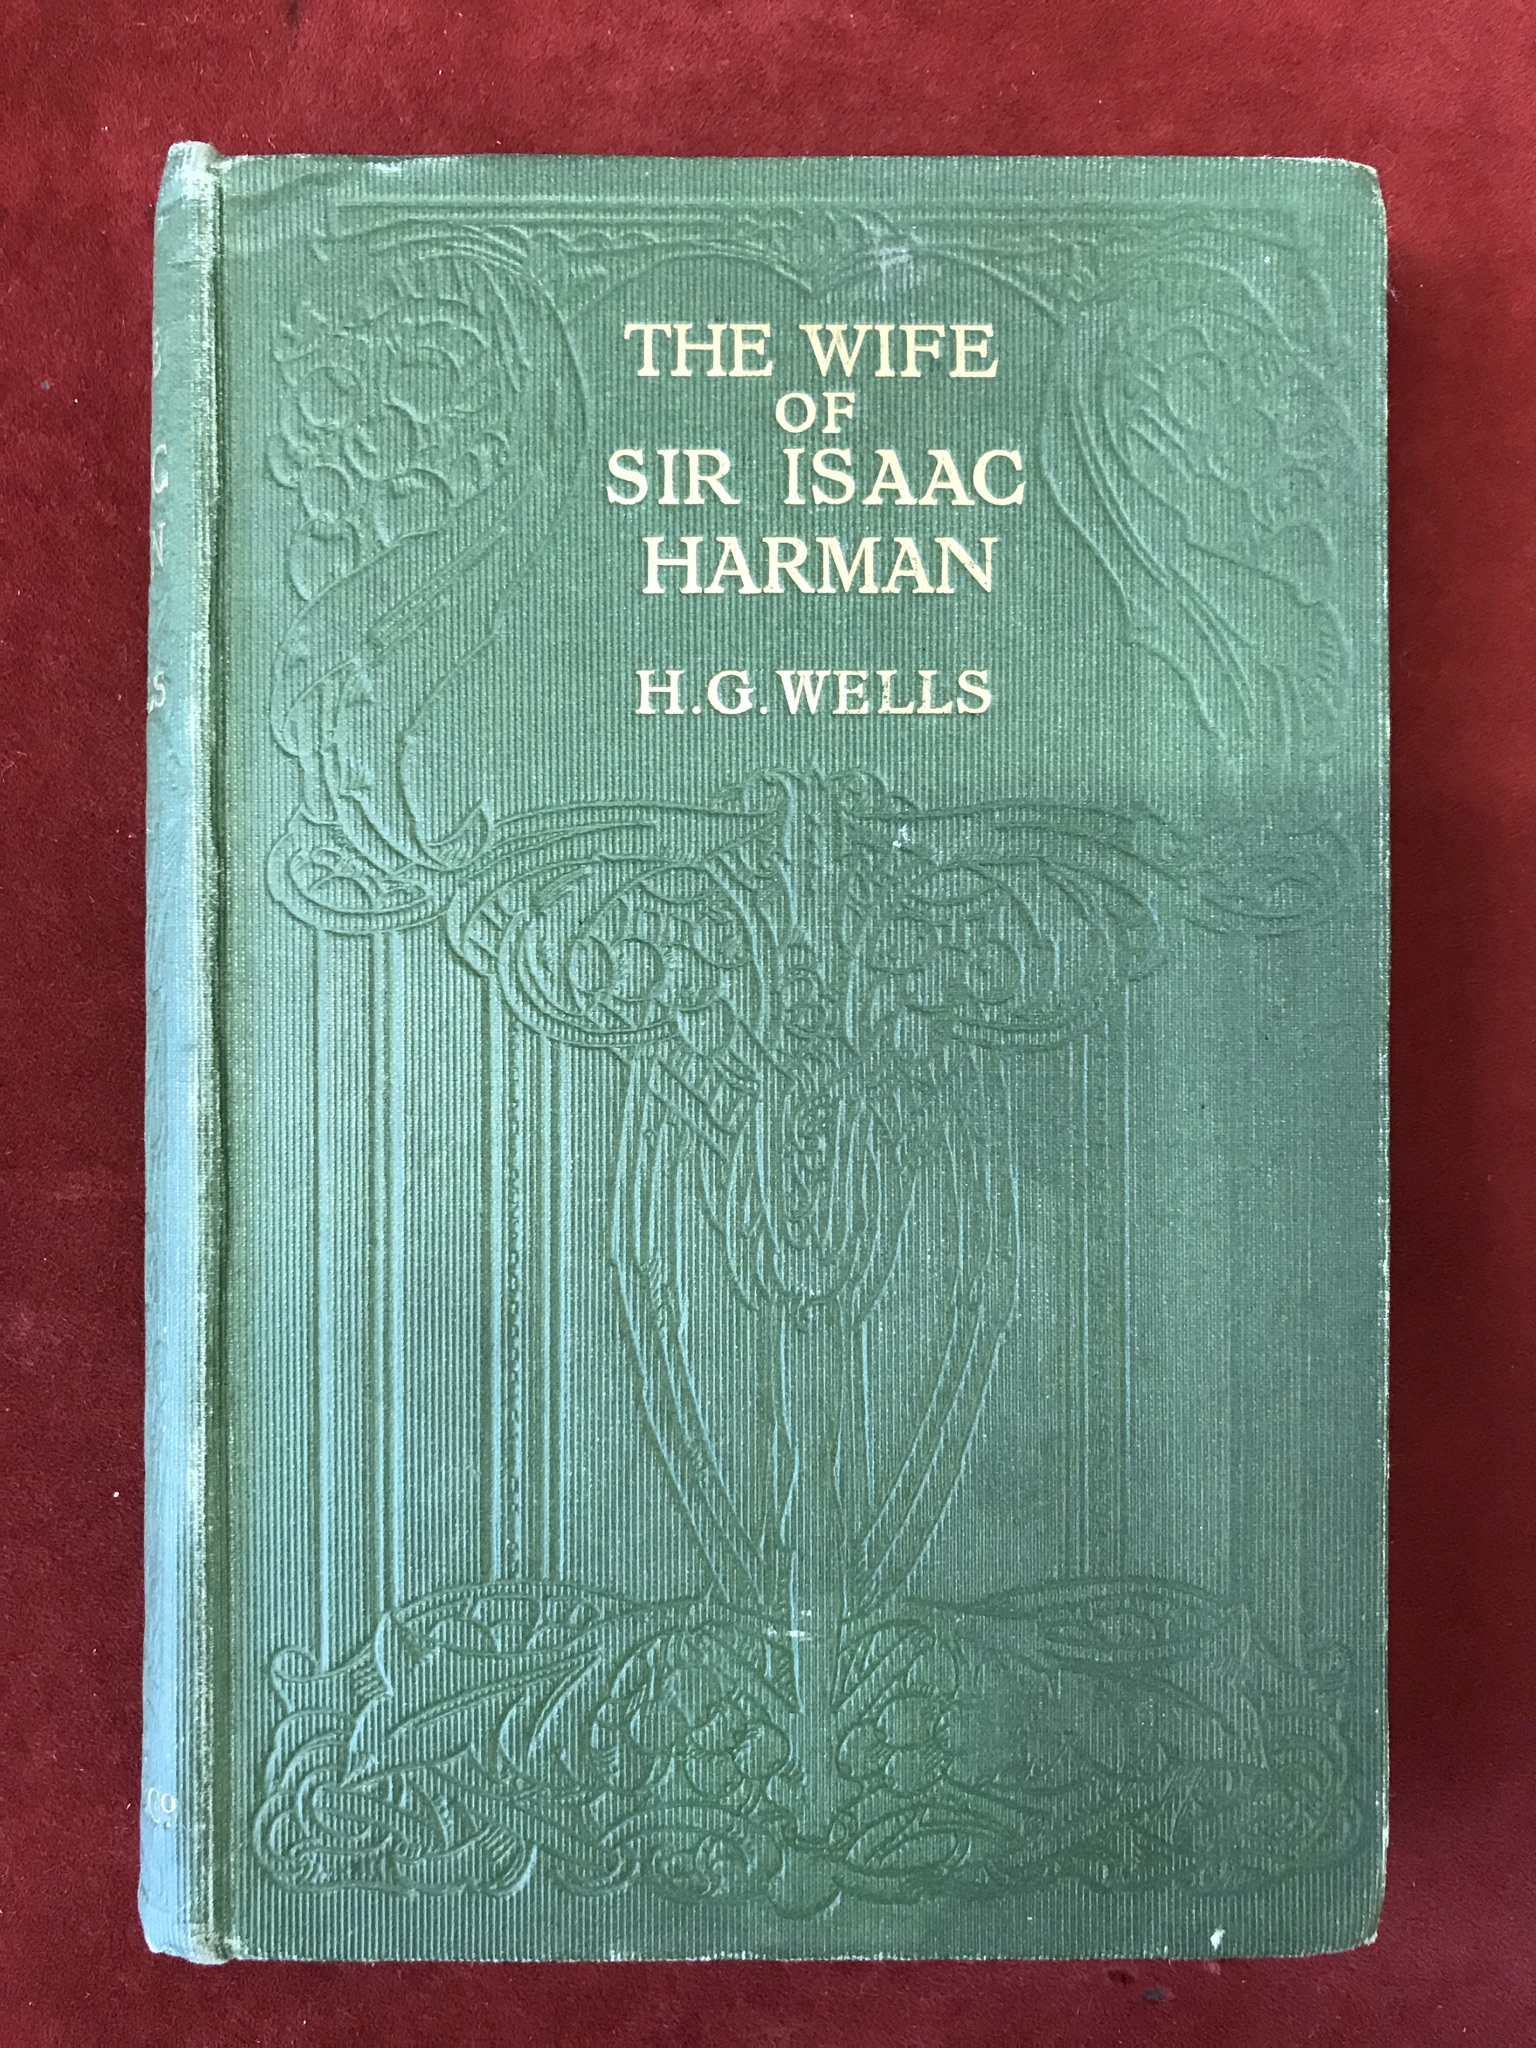 The Wife of Sir Isaac HarmanFirst edition, 1914